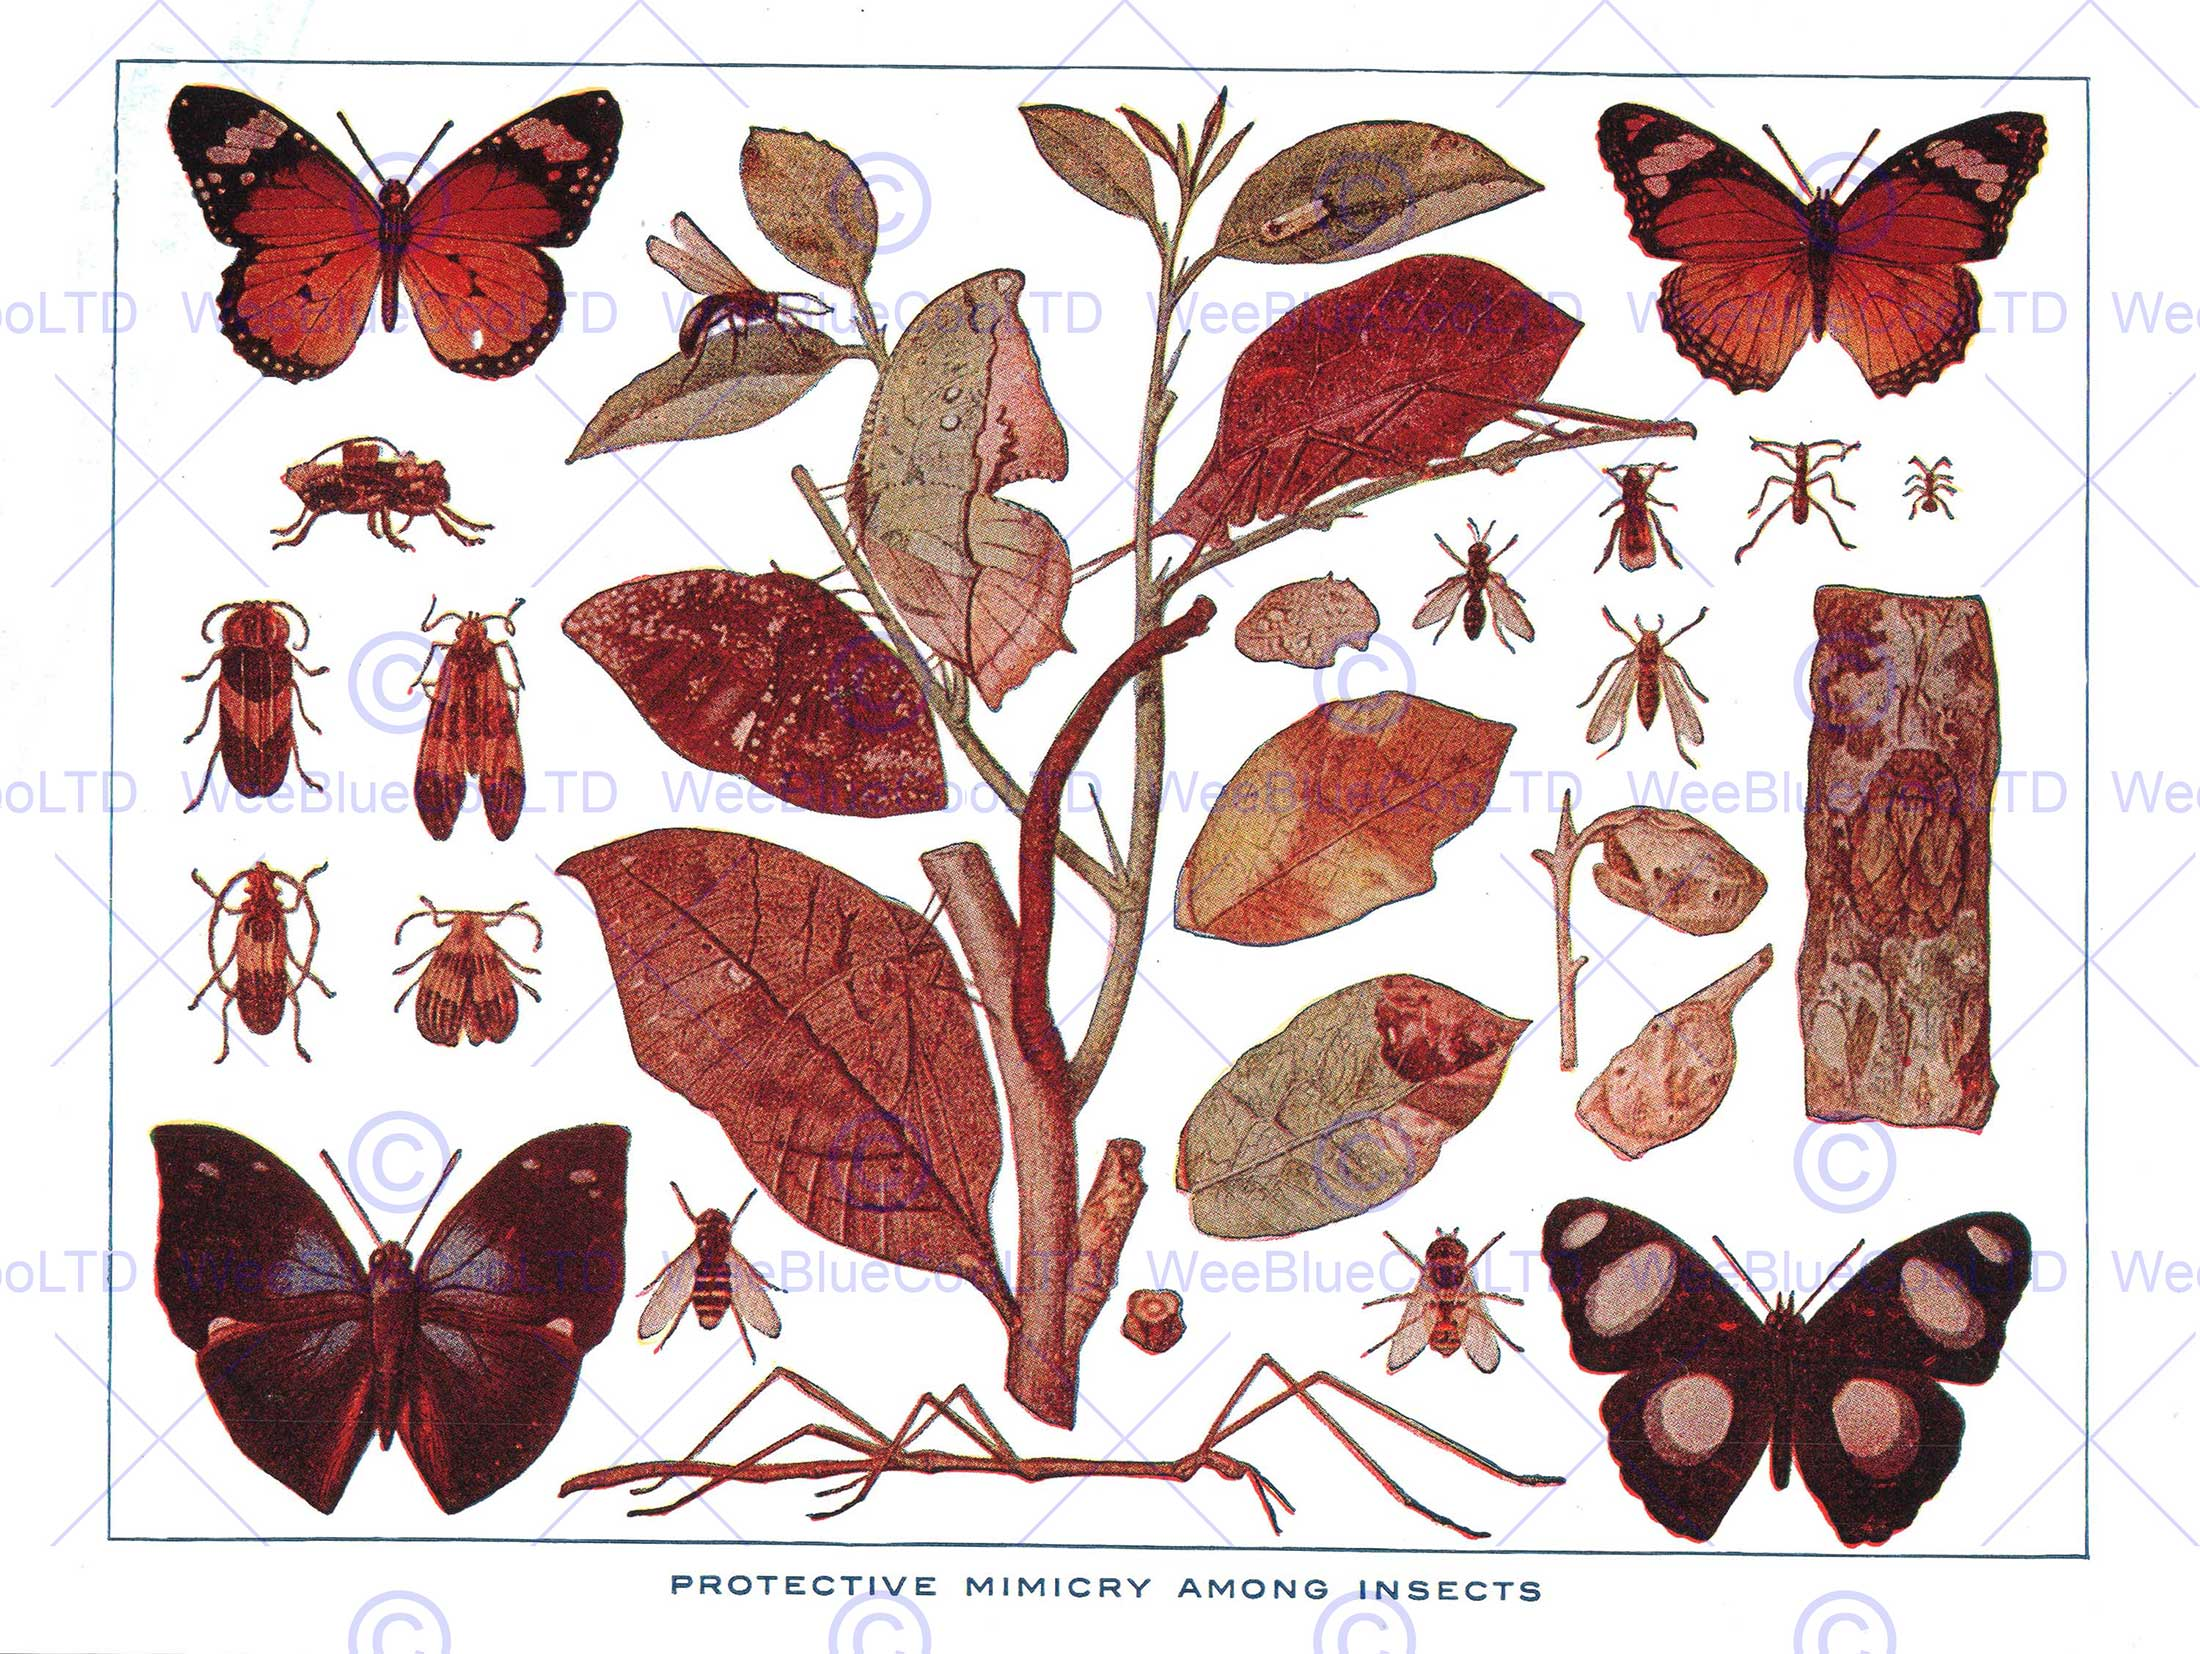 DRAWING PROTECTIVE MIMICRY INSECTS BUTTERFLY SCIENTIFIC ART PRINT.